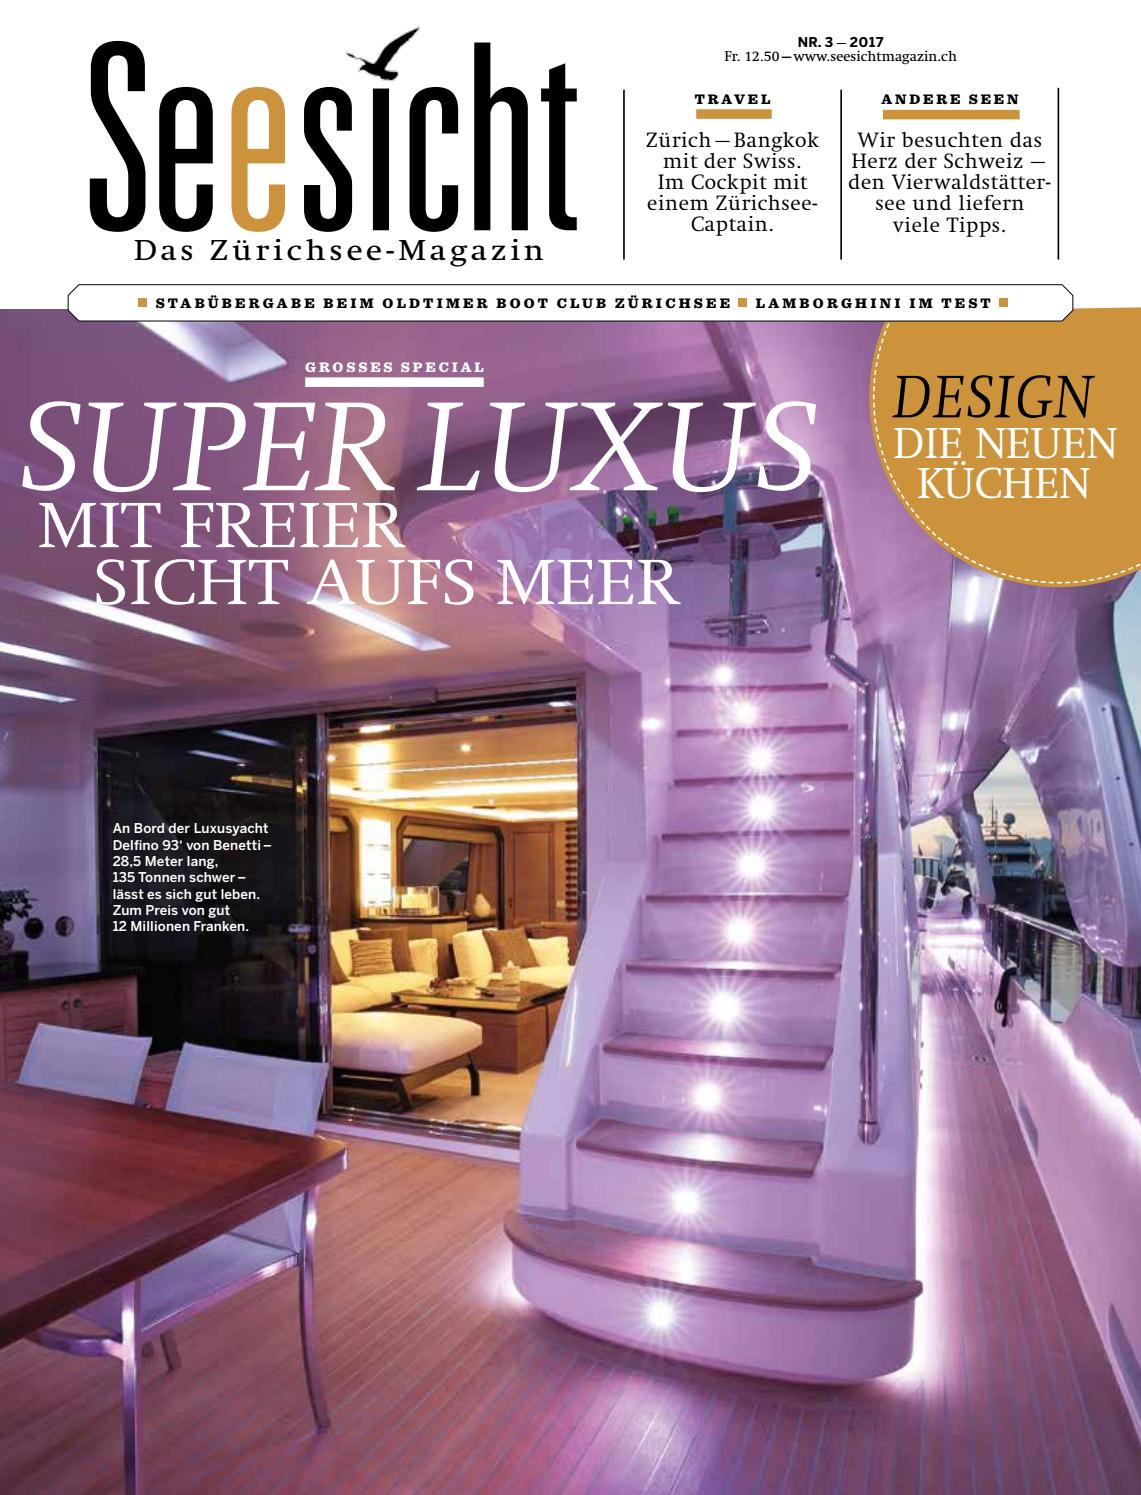 Seesicht 3 2017 By Seesicht Media Ag Issuu